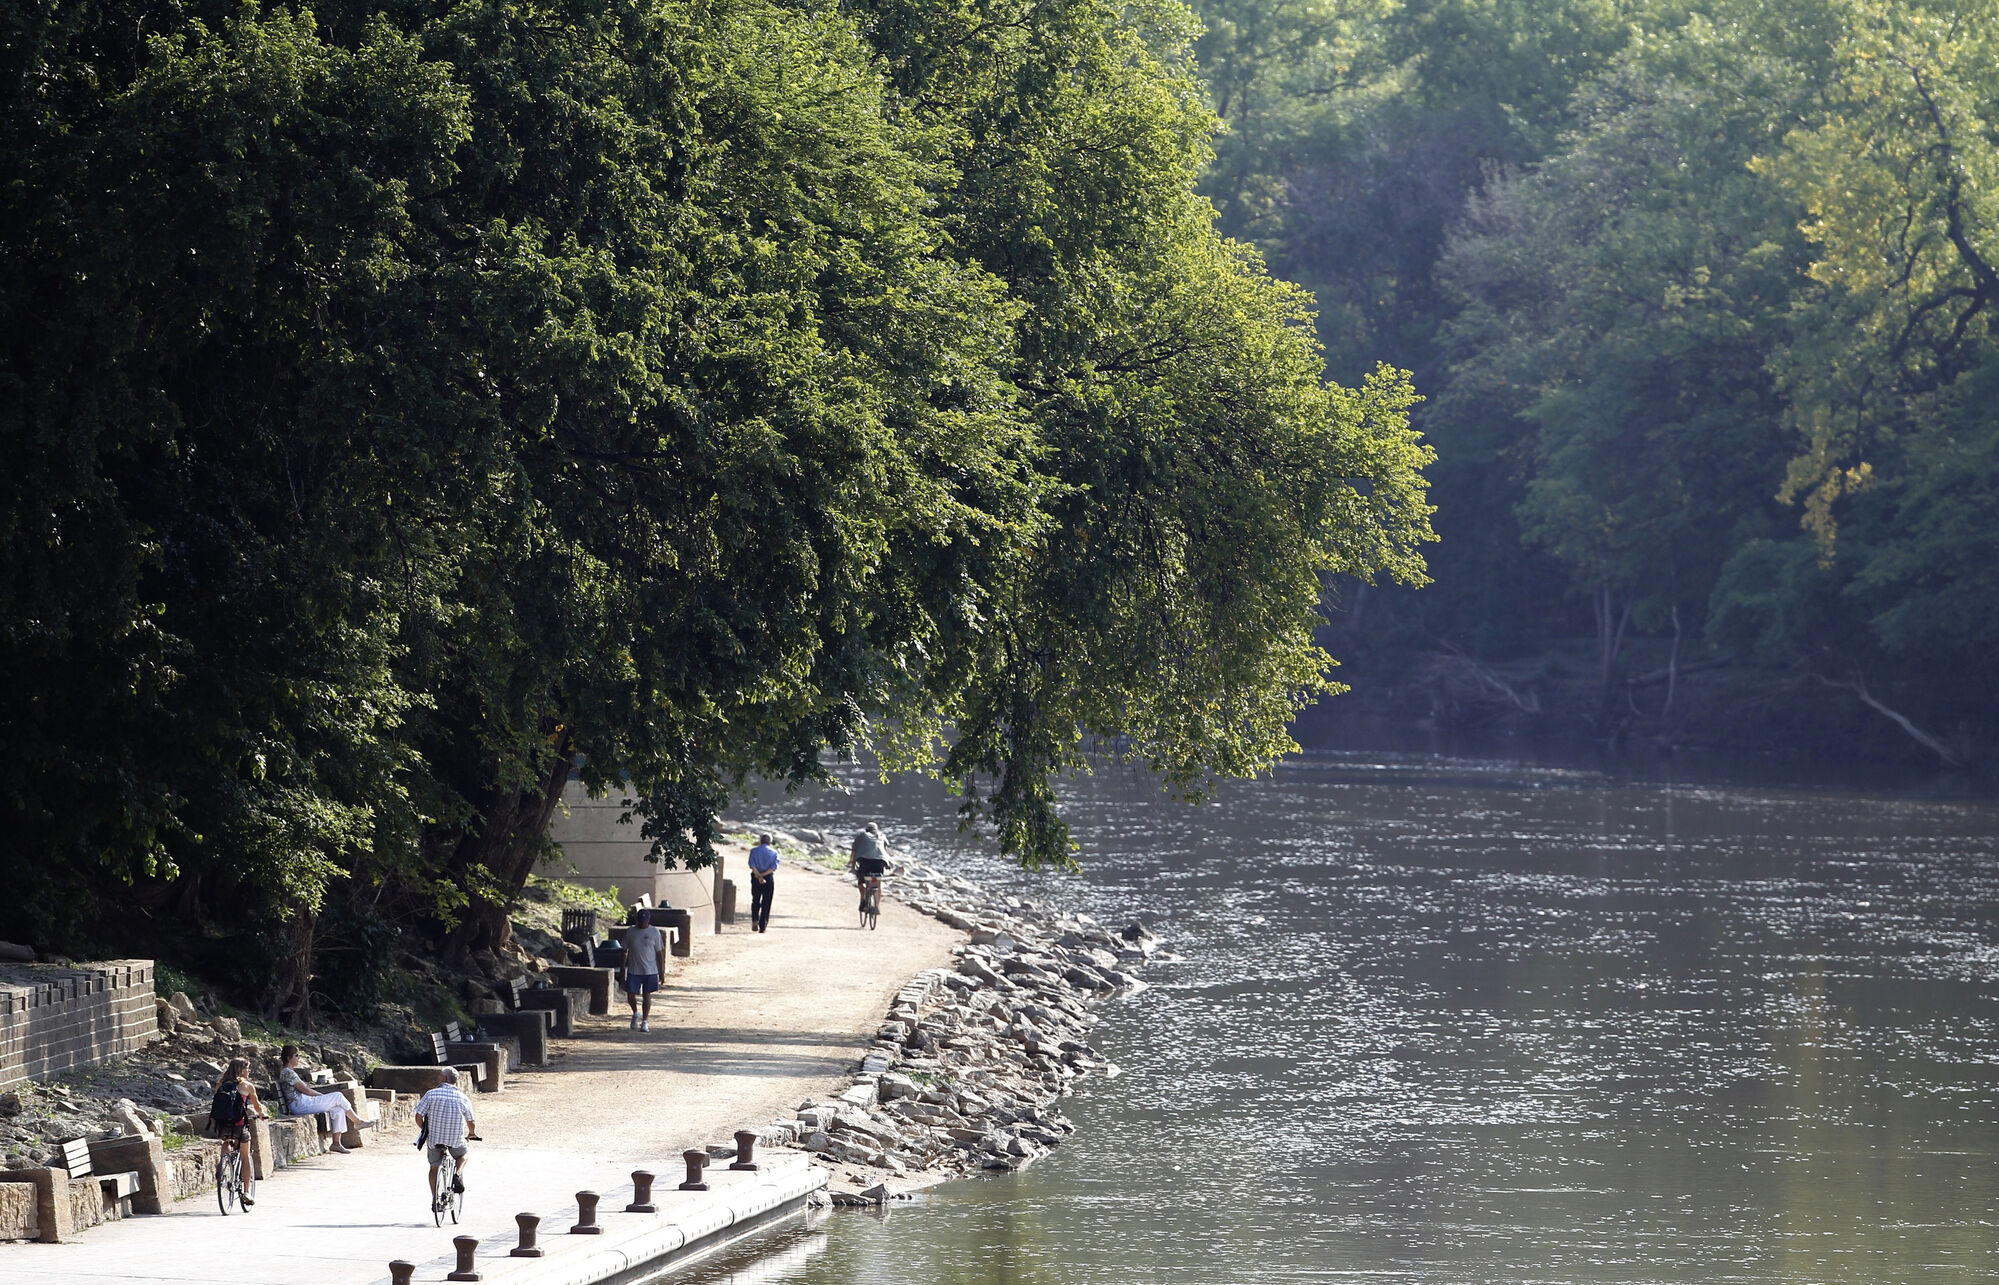 People walking and riding along the river walk that follows the Assiniboine River near the Legislative Building, Sunday, August 25, 2013. (TREVOR HAGAN/WINNIPEG FREE PRESS)